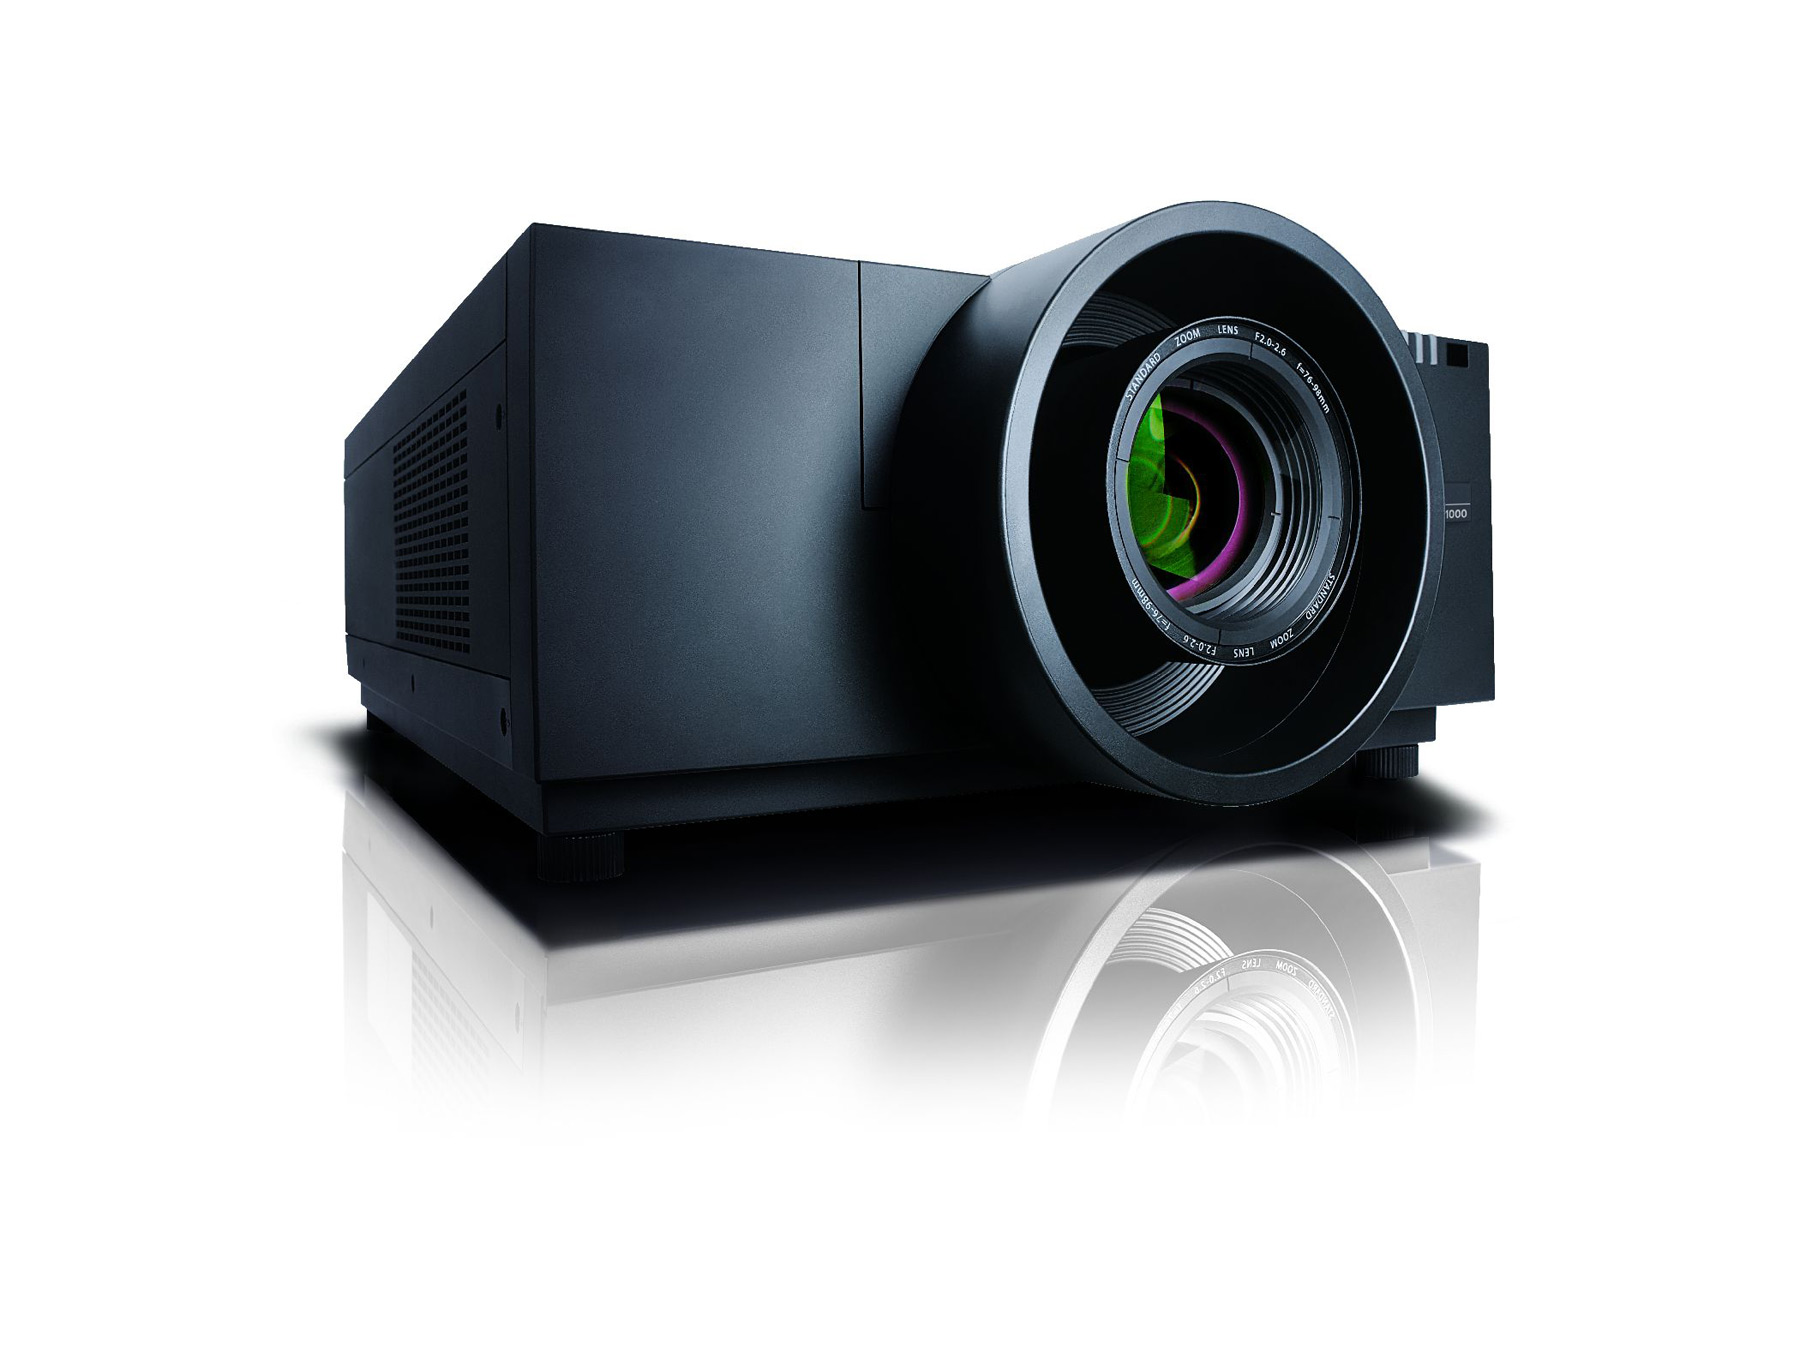 /globalassets/.catalog/products/images/christie-l2k1000/gallery/christie-l2k-1000-3-lcd-digital-projector-image-11.jpg